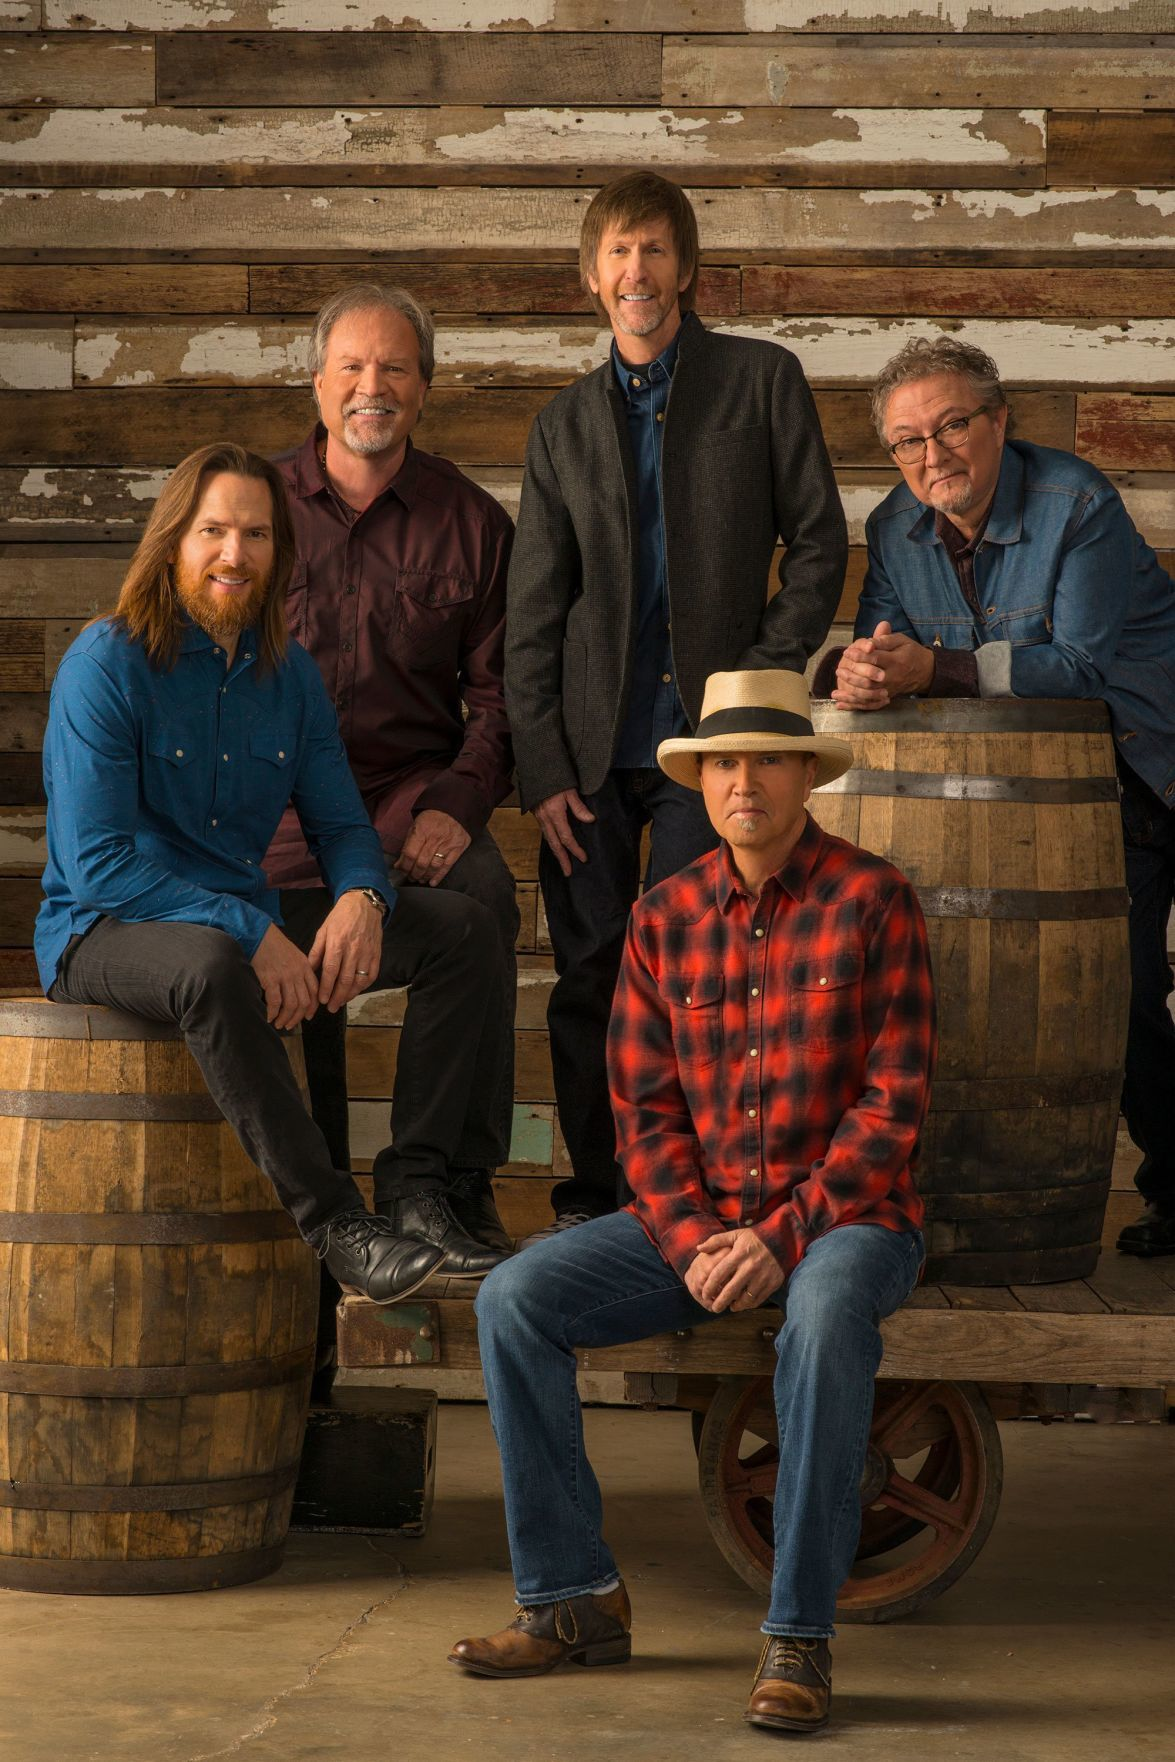 Sawyer Brown barrel shot